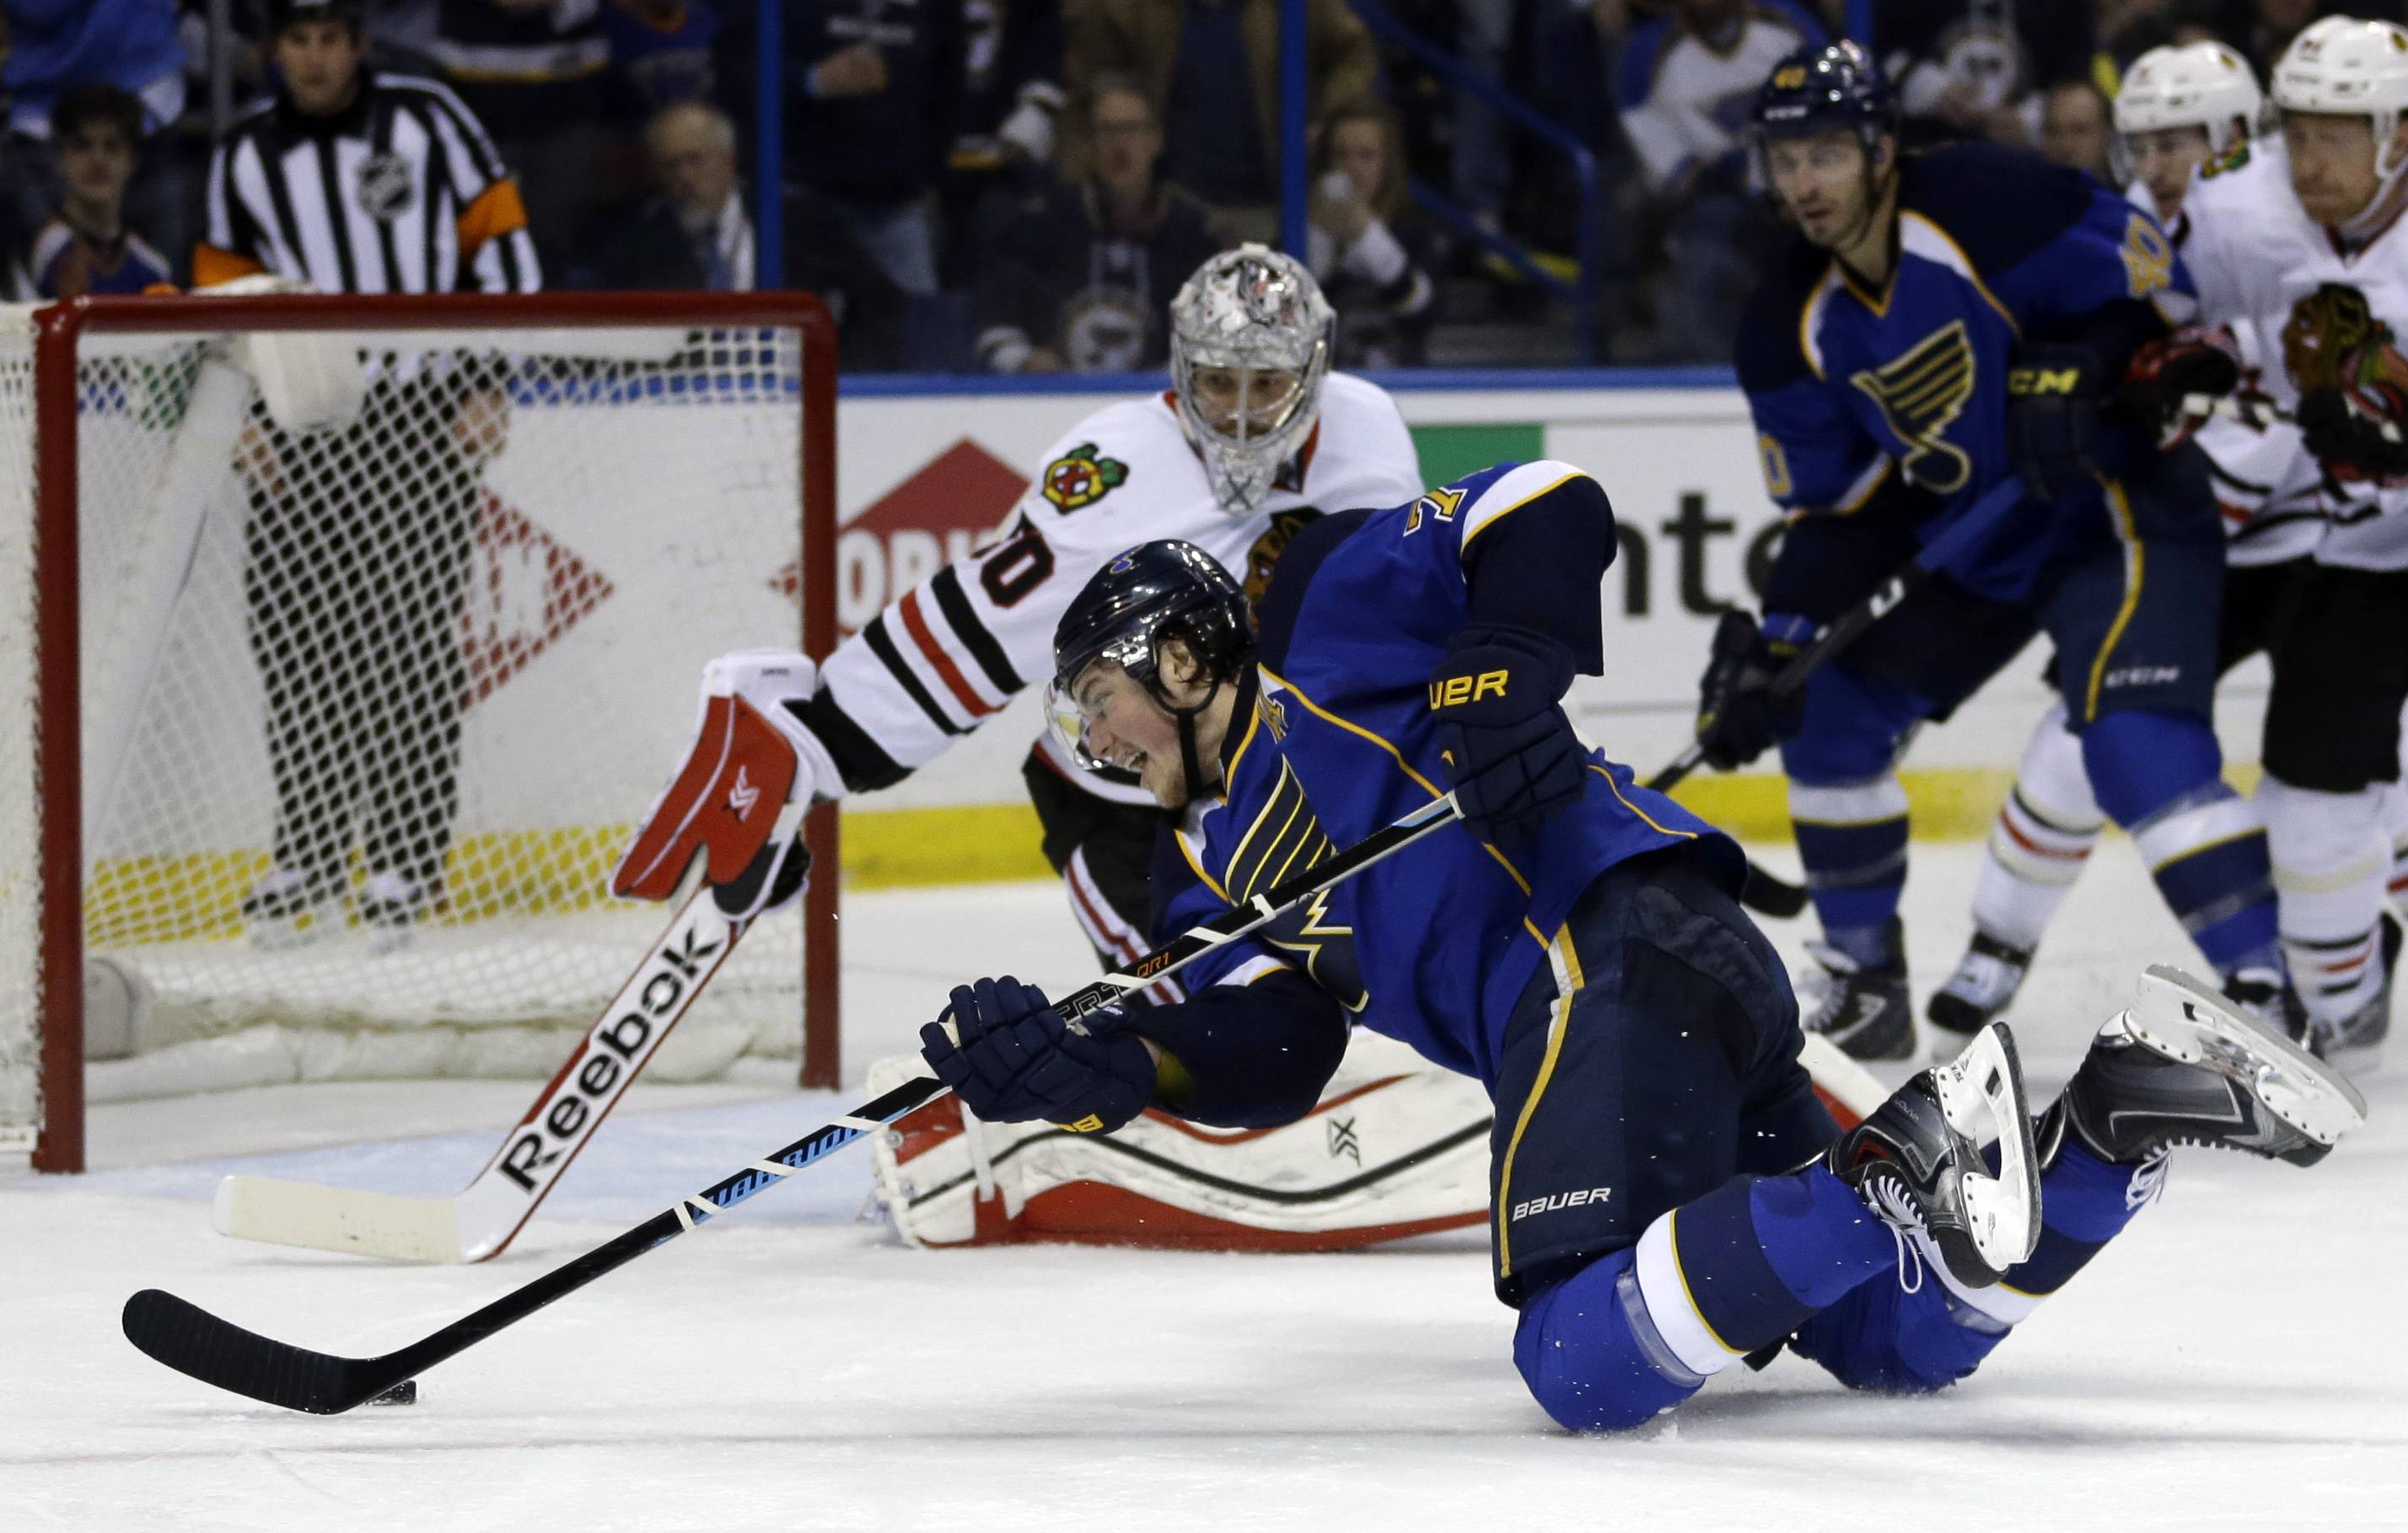 St. Louis Blues' T.J. Oshie, front, reaches for a puck to score past Chicago Blackhawks goalie Corey Crawford during the second period.